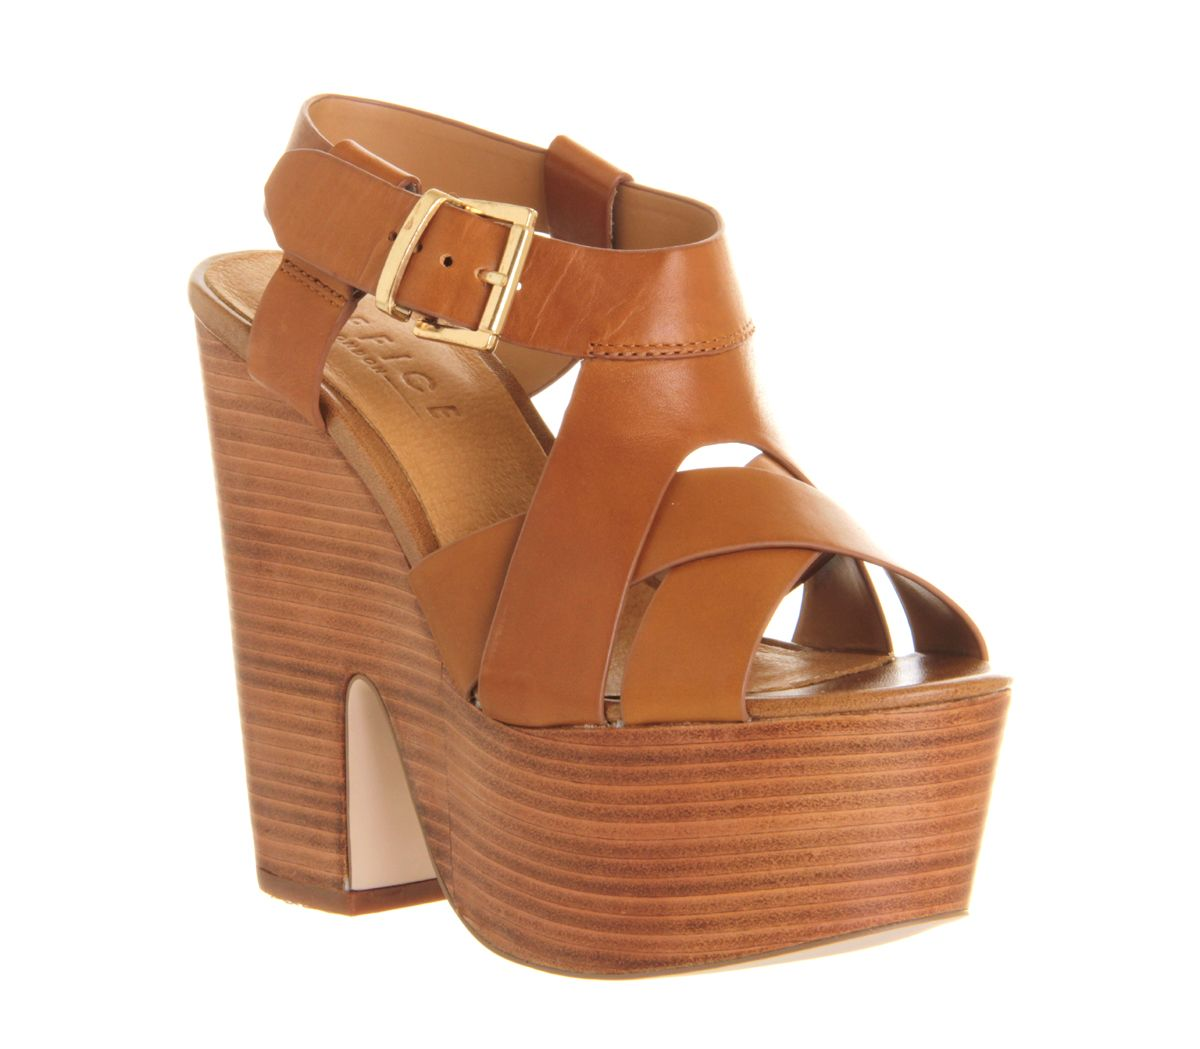 Sahara cross strap platform sandals